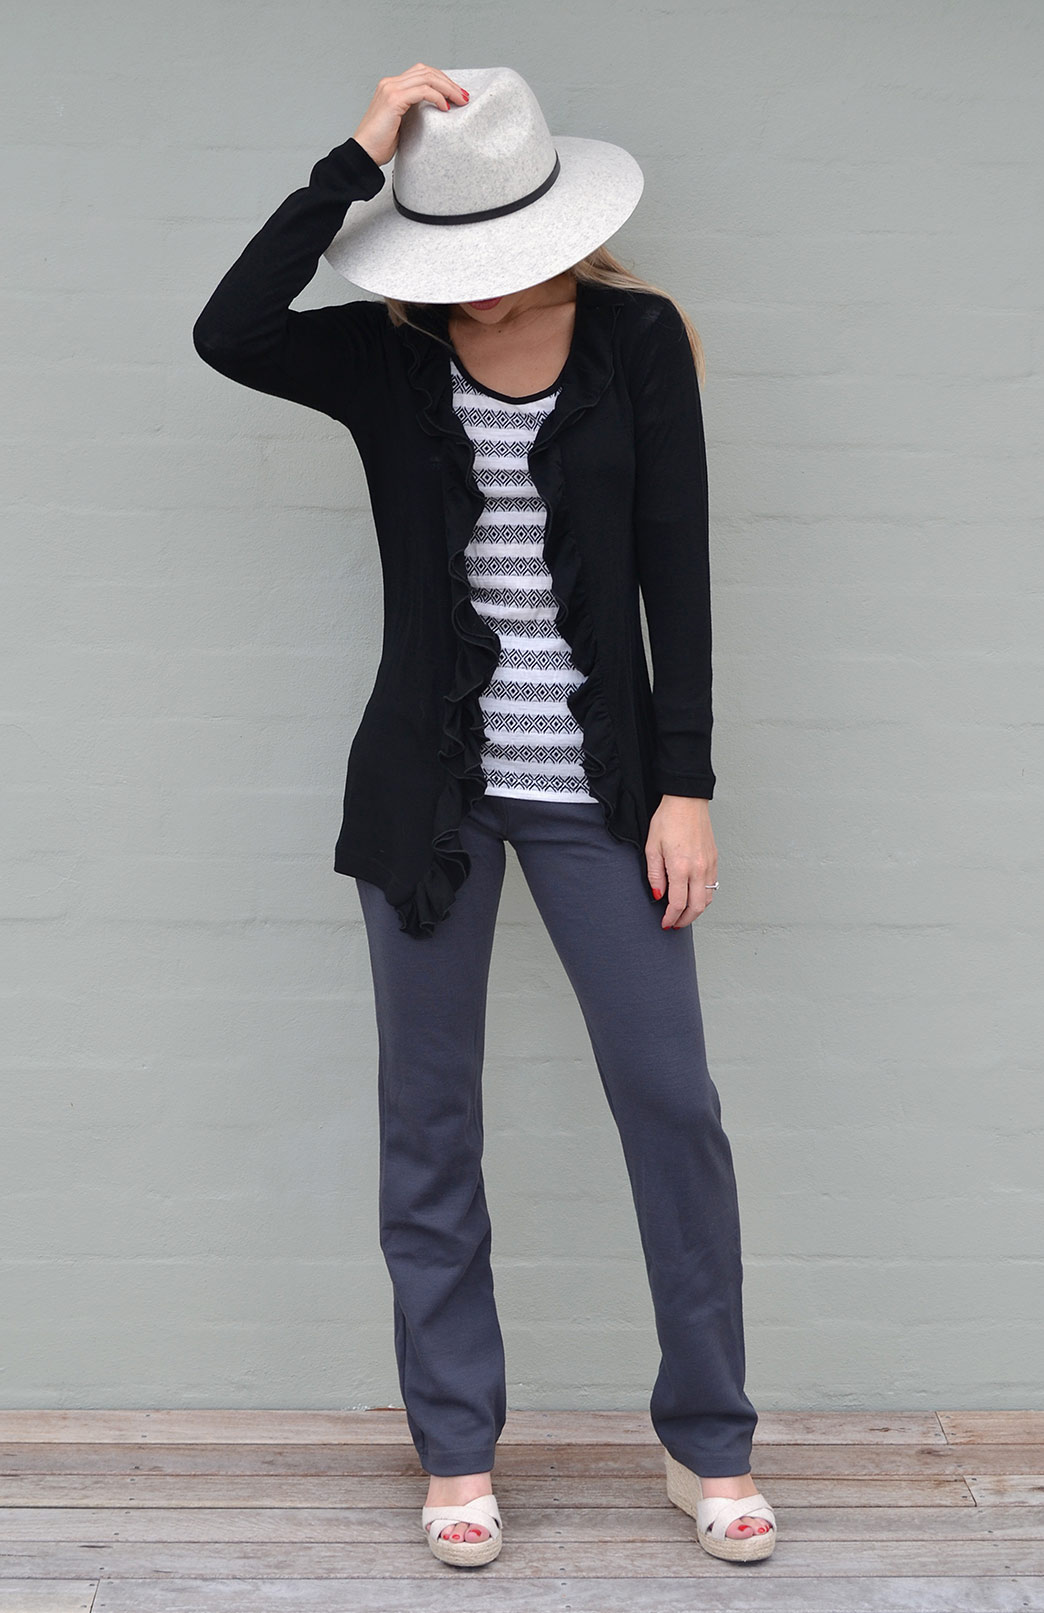 Ruffled Cardigan - Women's Classic Straight Black Wool Cardigan with Ruffled Neckline - Smitten Merino Tasmania Australia